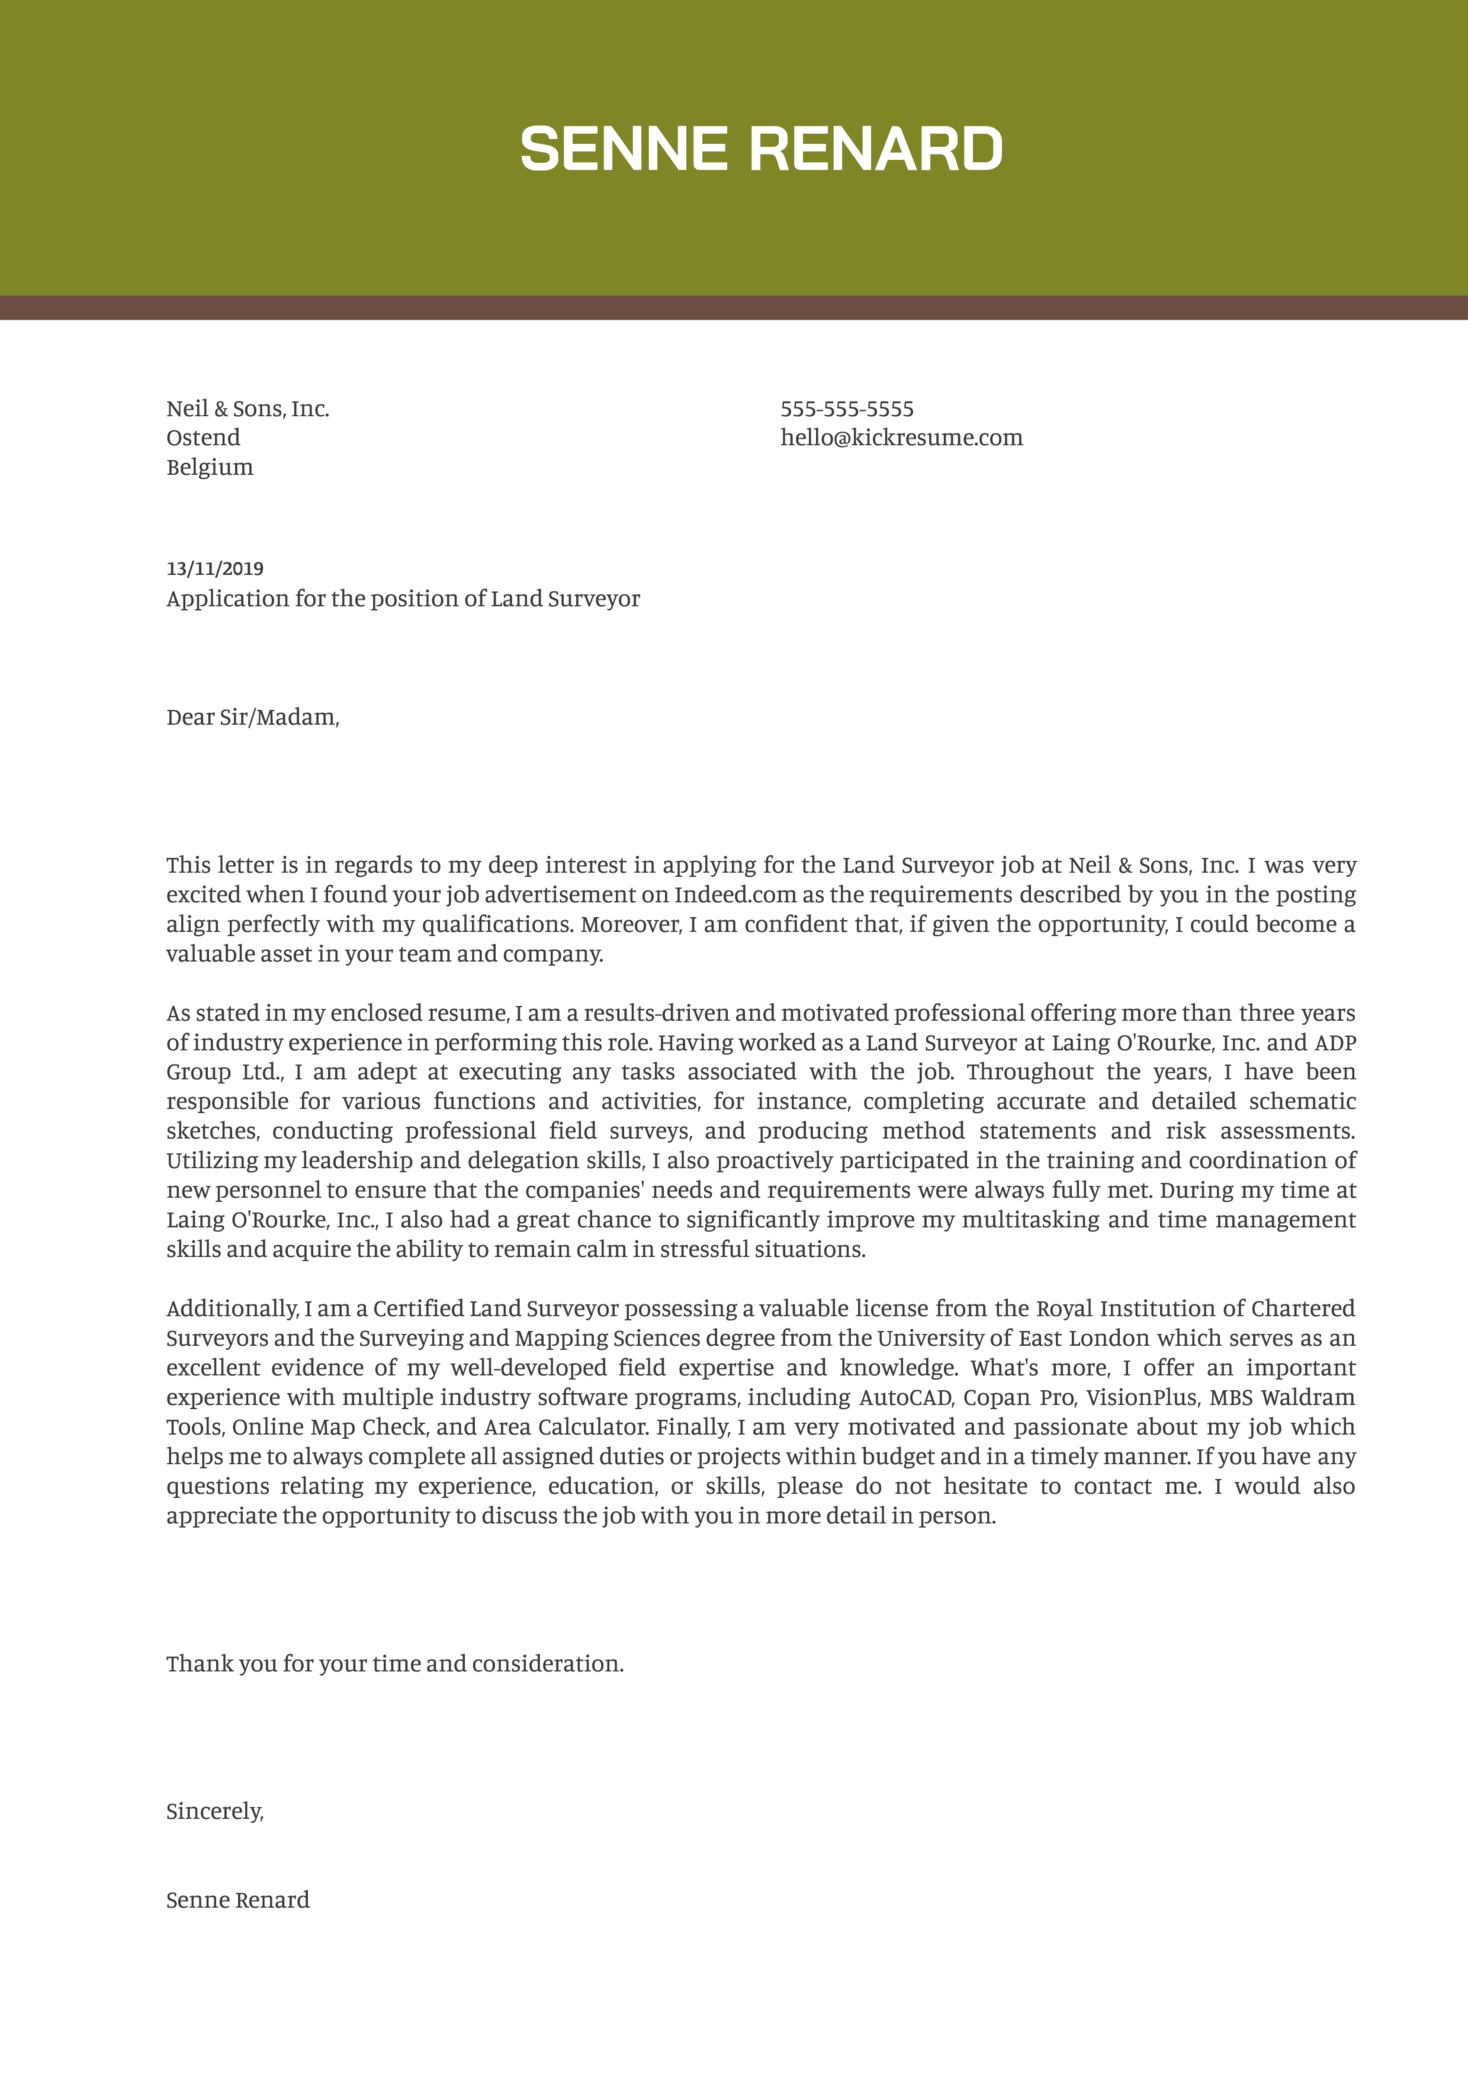 Land Surveyor Cover Letter Example